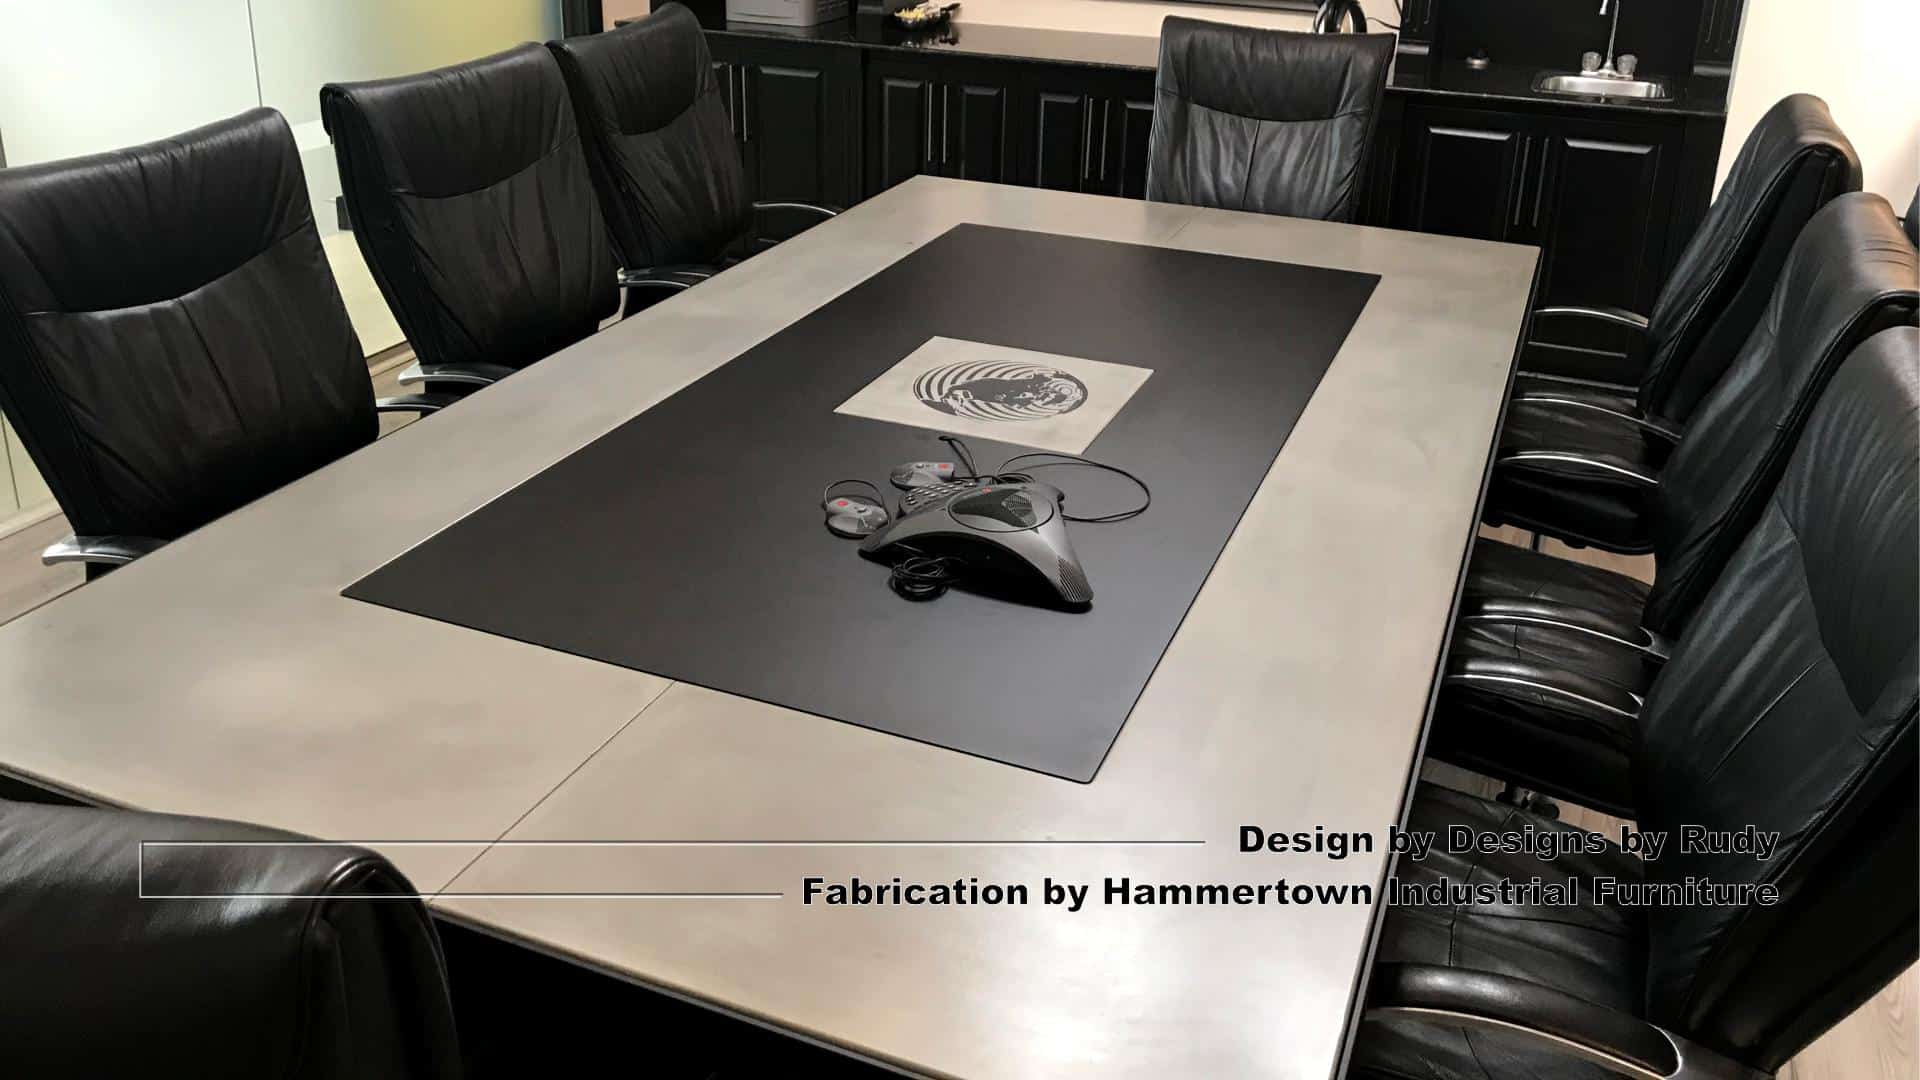 7 Concrete and steel boardroom table for NAC, Designs by Rudy, Hammertown Industrial Furniture, angle view